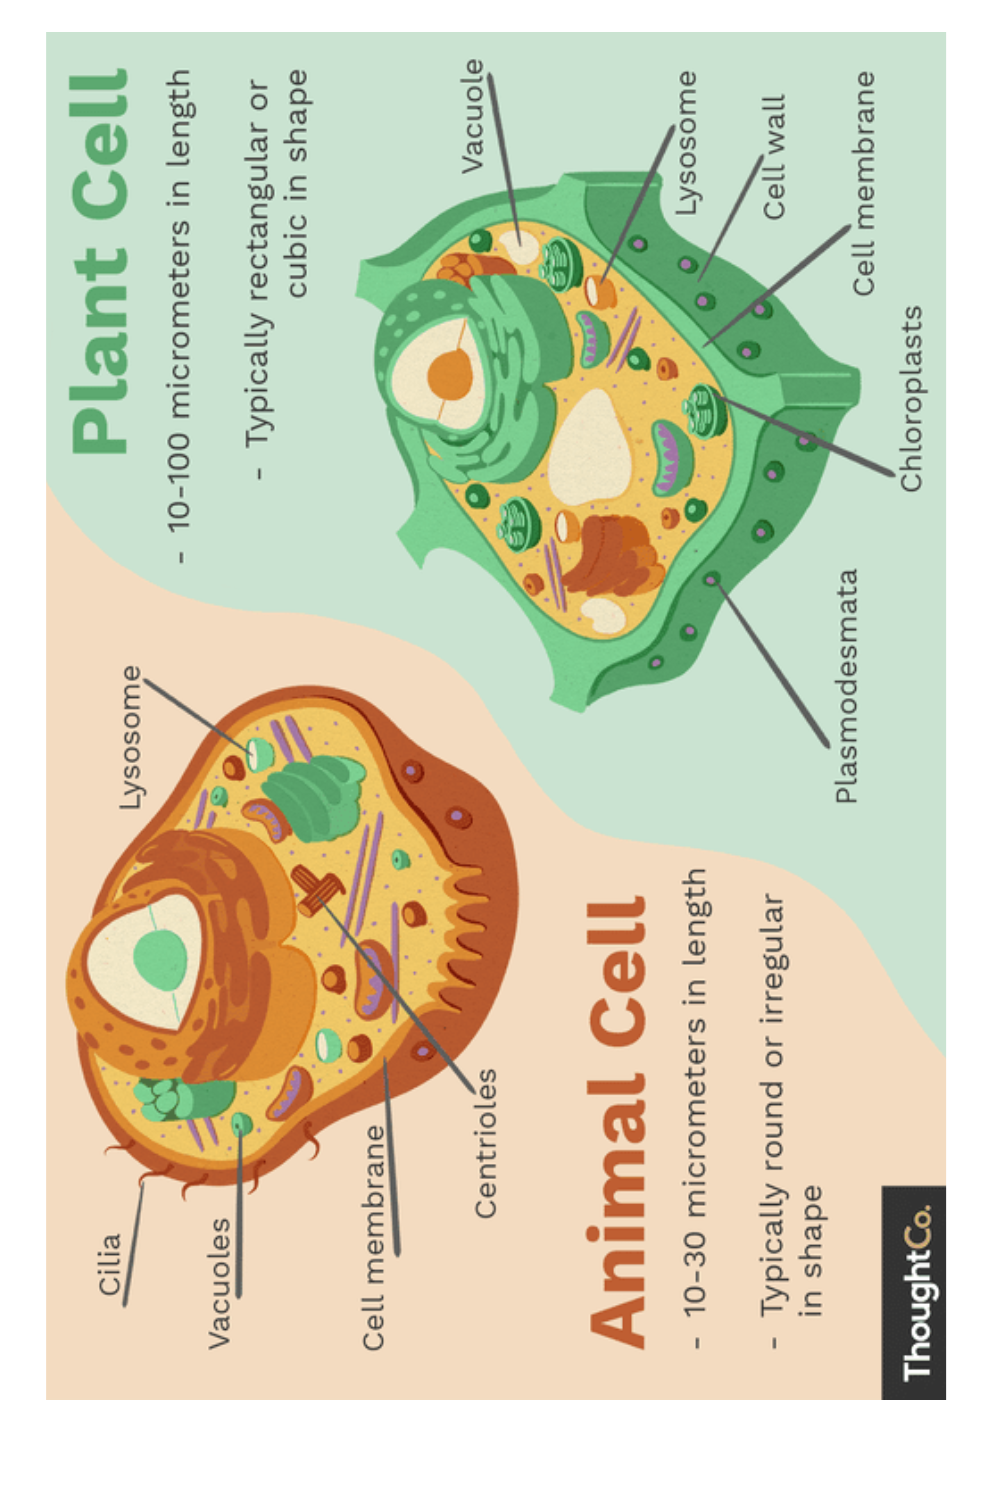 Plant VS Animal Cell Diagram in 2020 Plant and animal